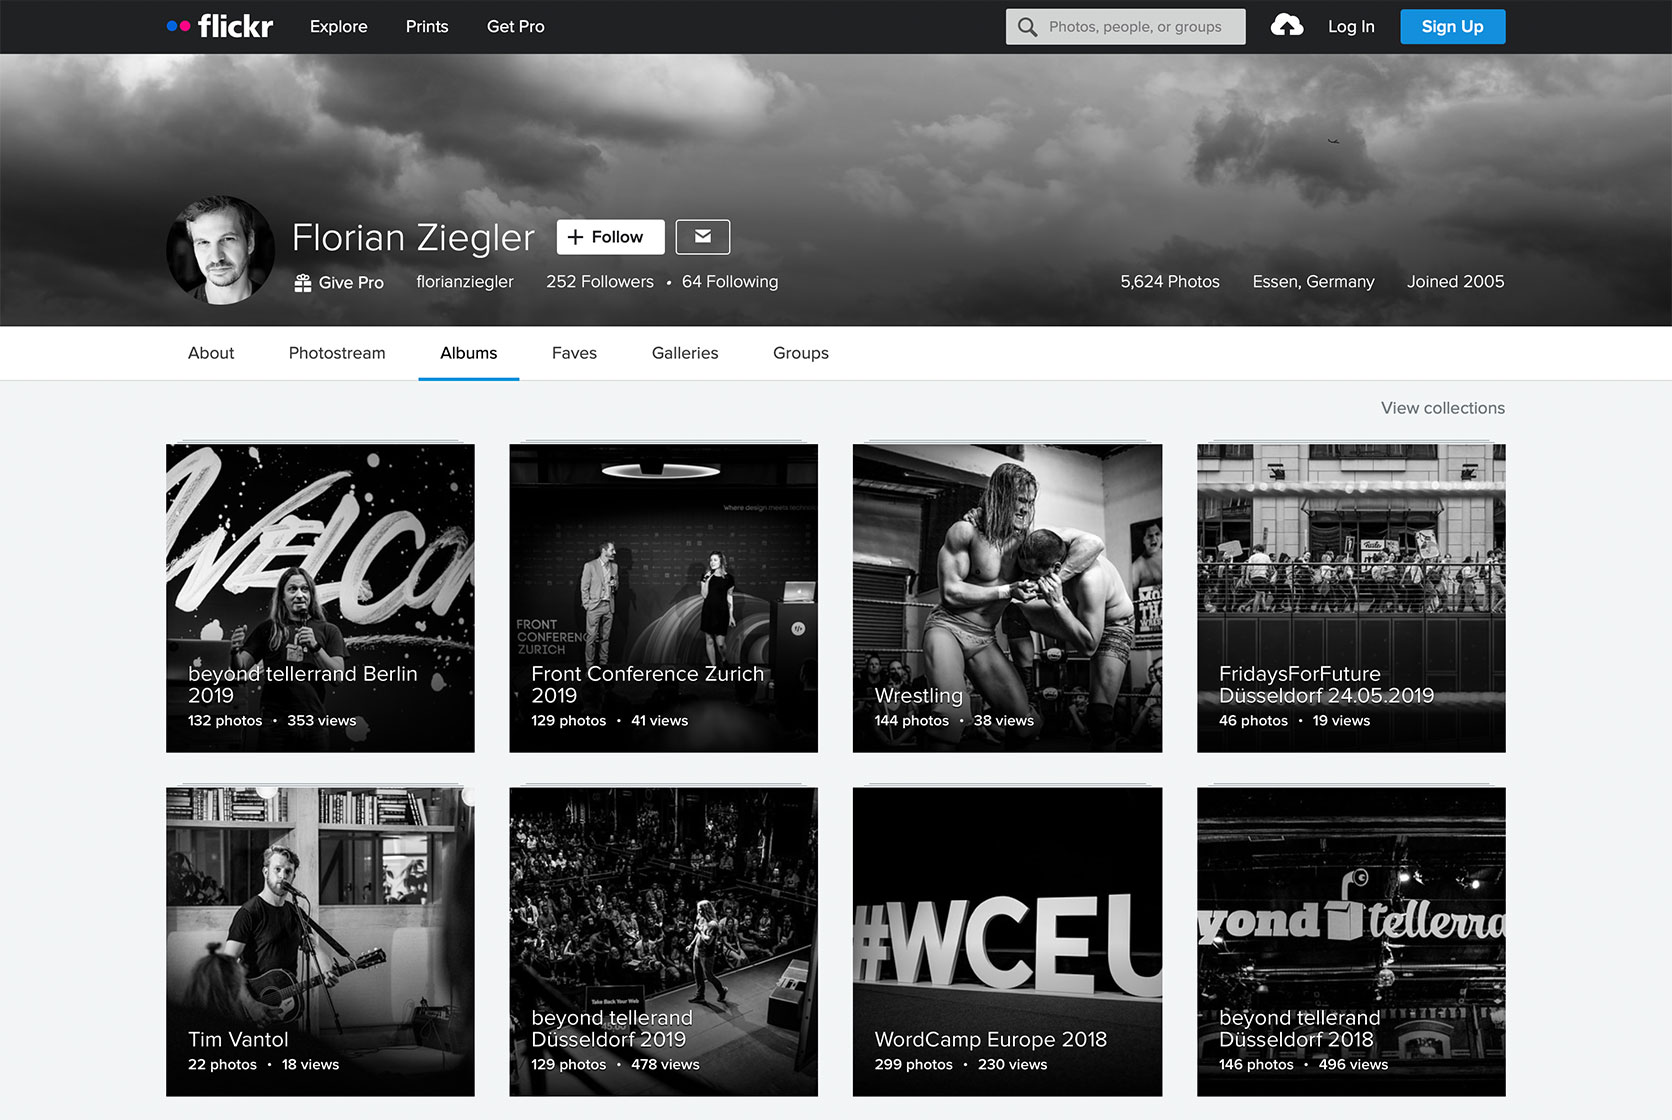 A screenshot of my Albums page on flickr.com